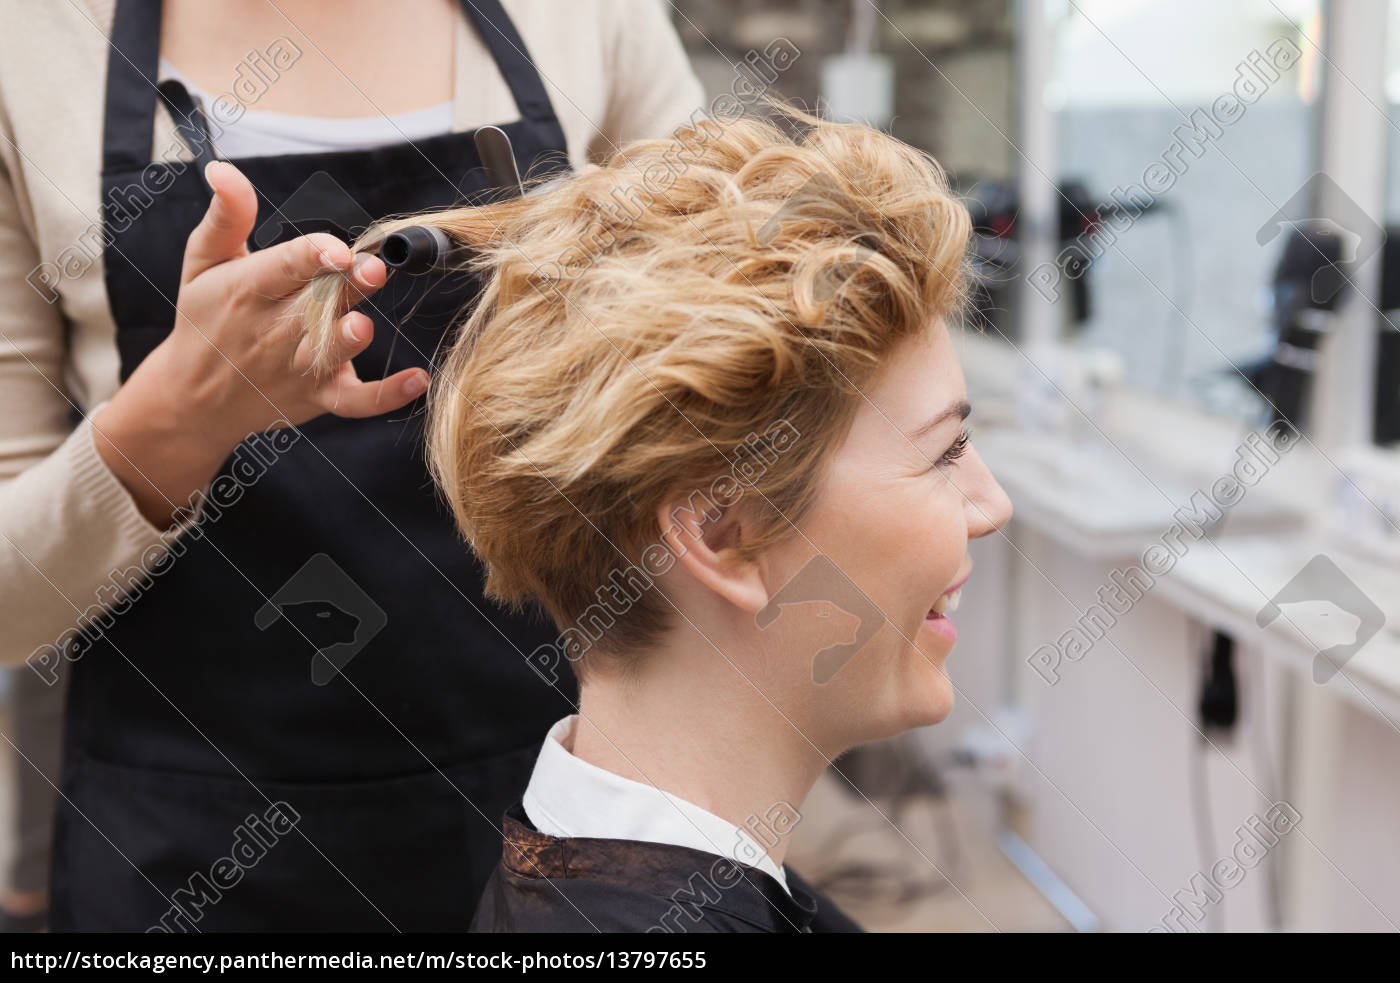 customer, getting, her, hair, styled - 13797655